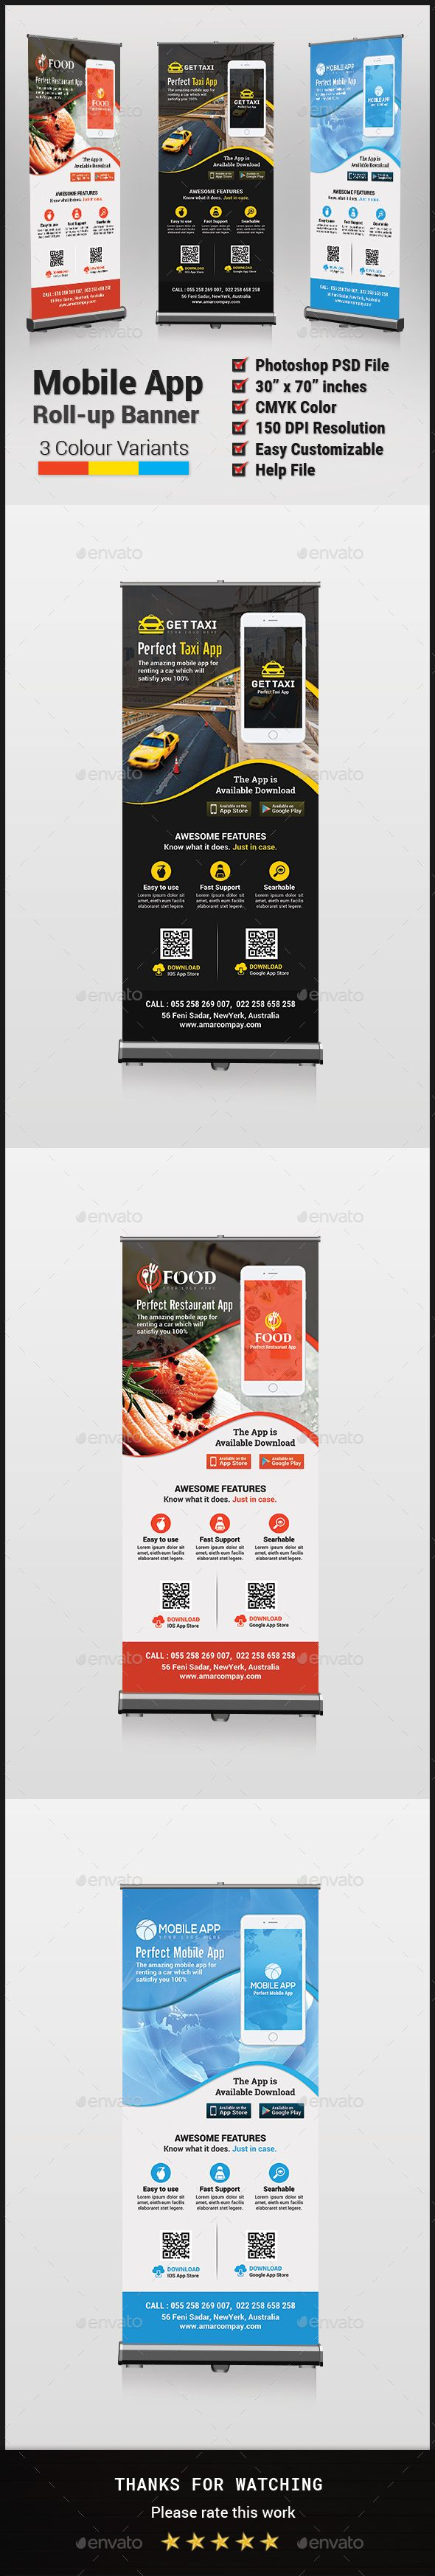 Mobile App Promotion Roll-up Banners Template PSD